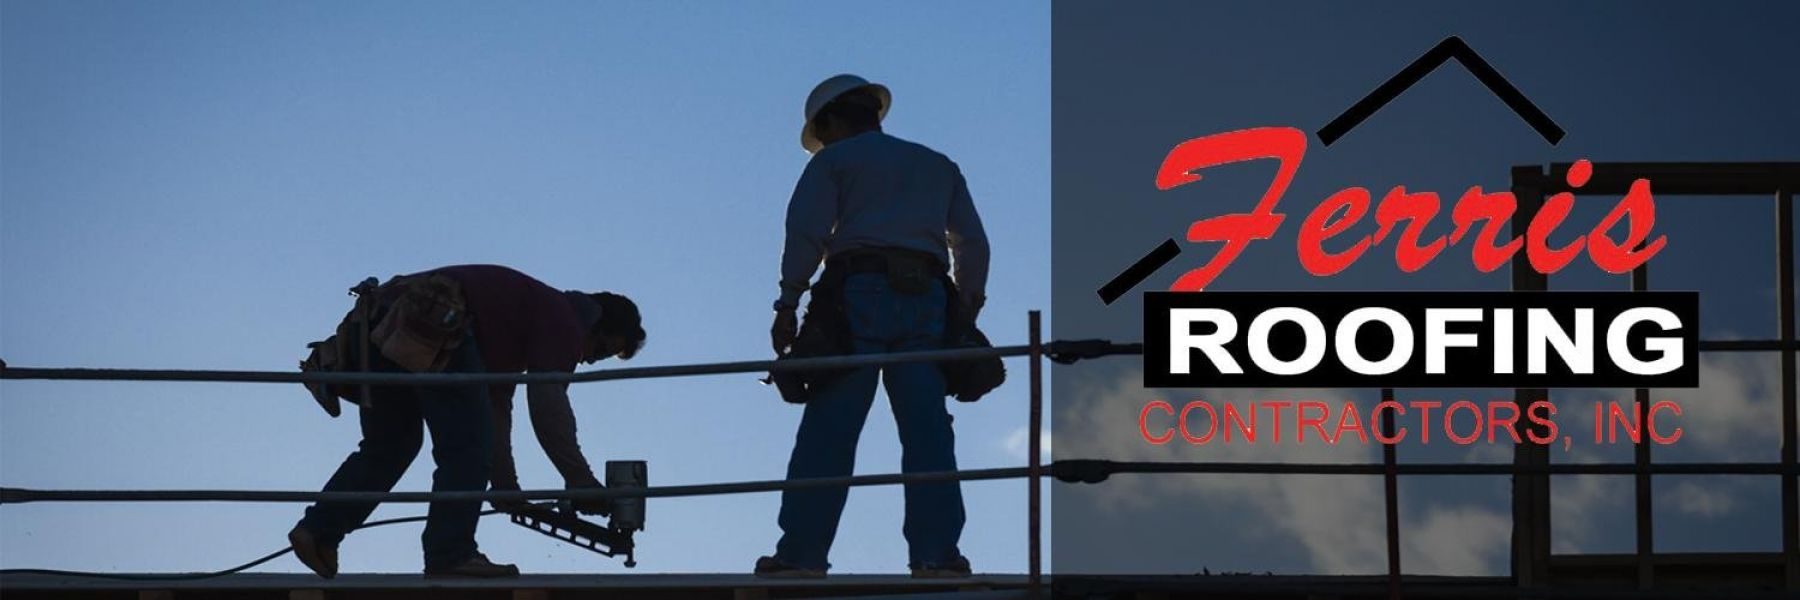 Residential roofing fort worth